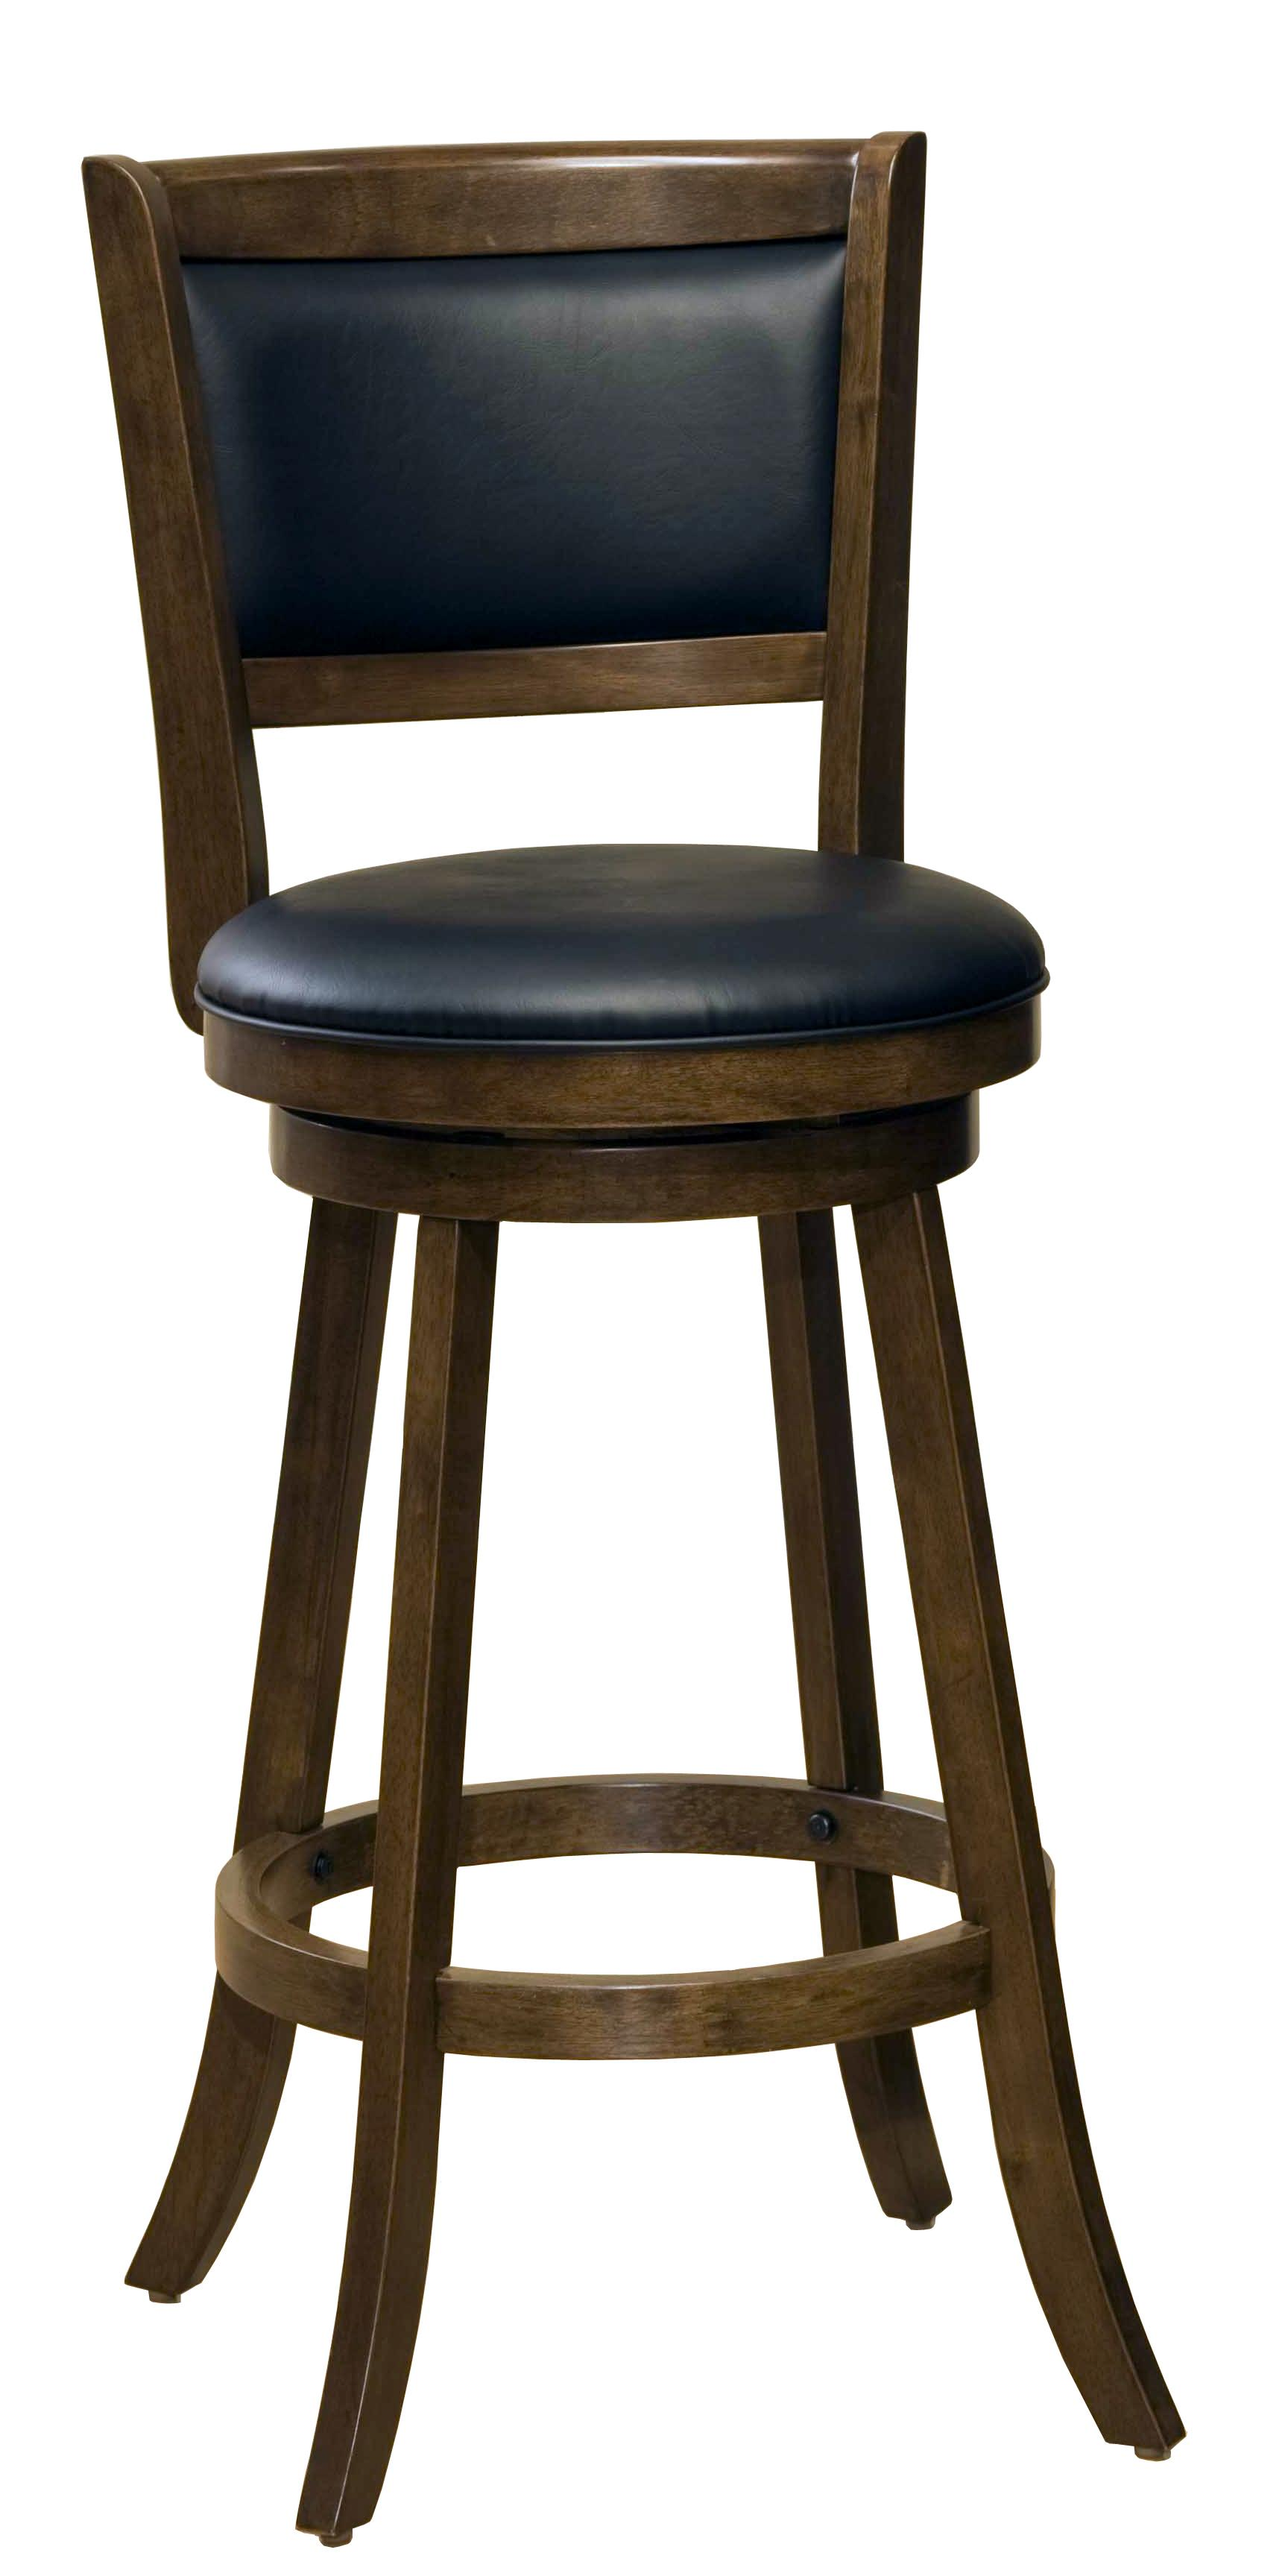 Hillsdale Wood Stools 29 Quot Bar Height Dennery Swivel Bar